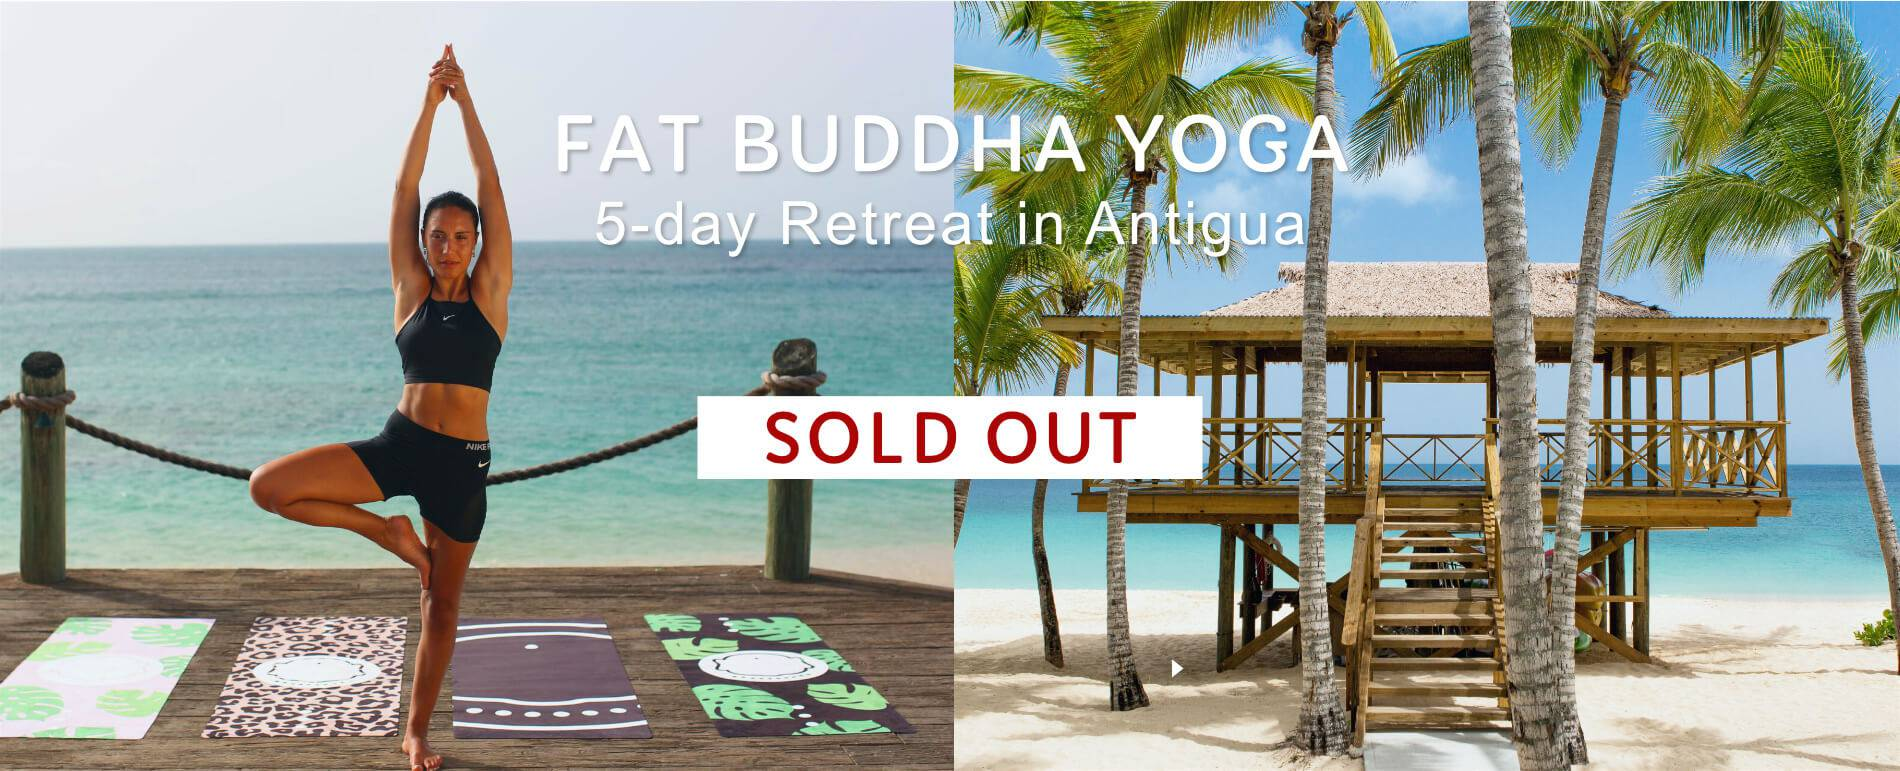 Fat Buddha Yoga - SOLD OUT